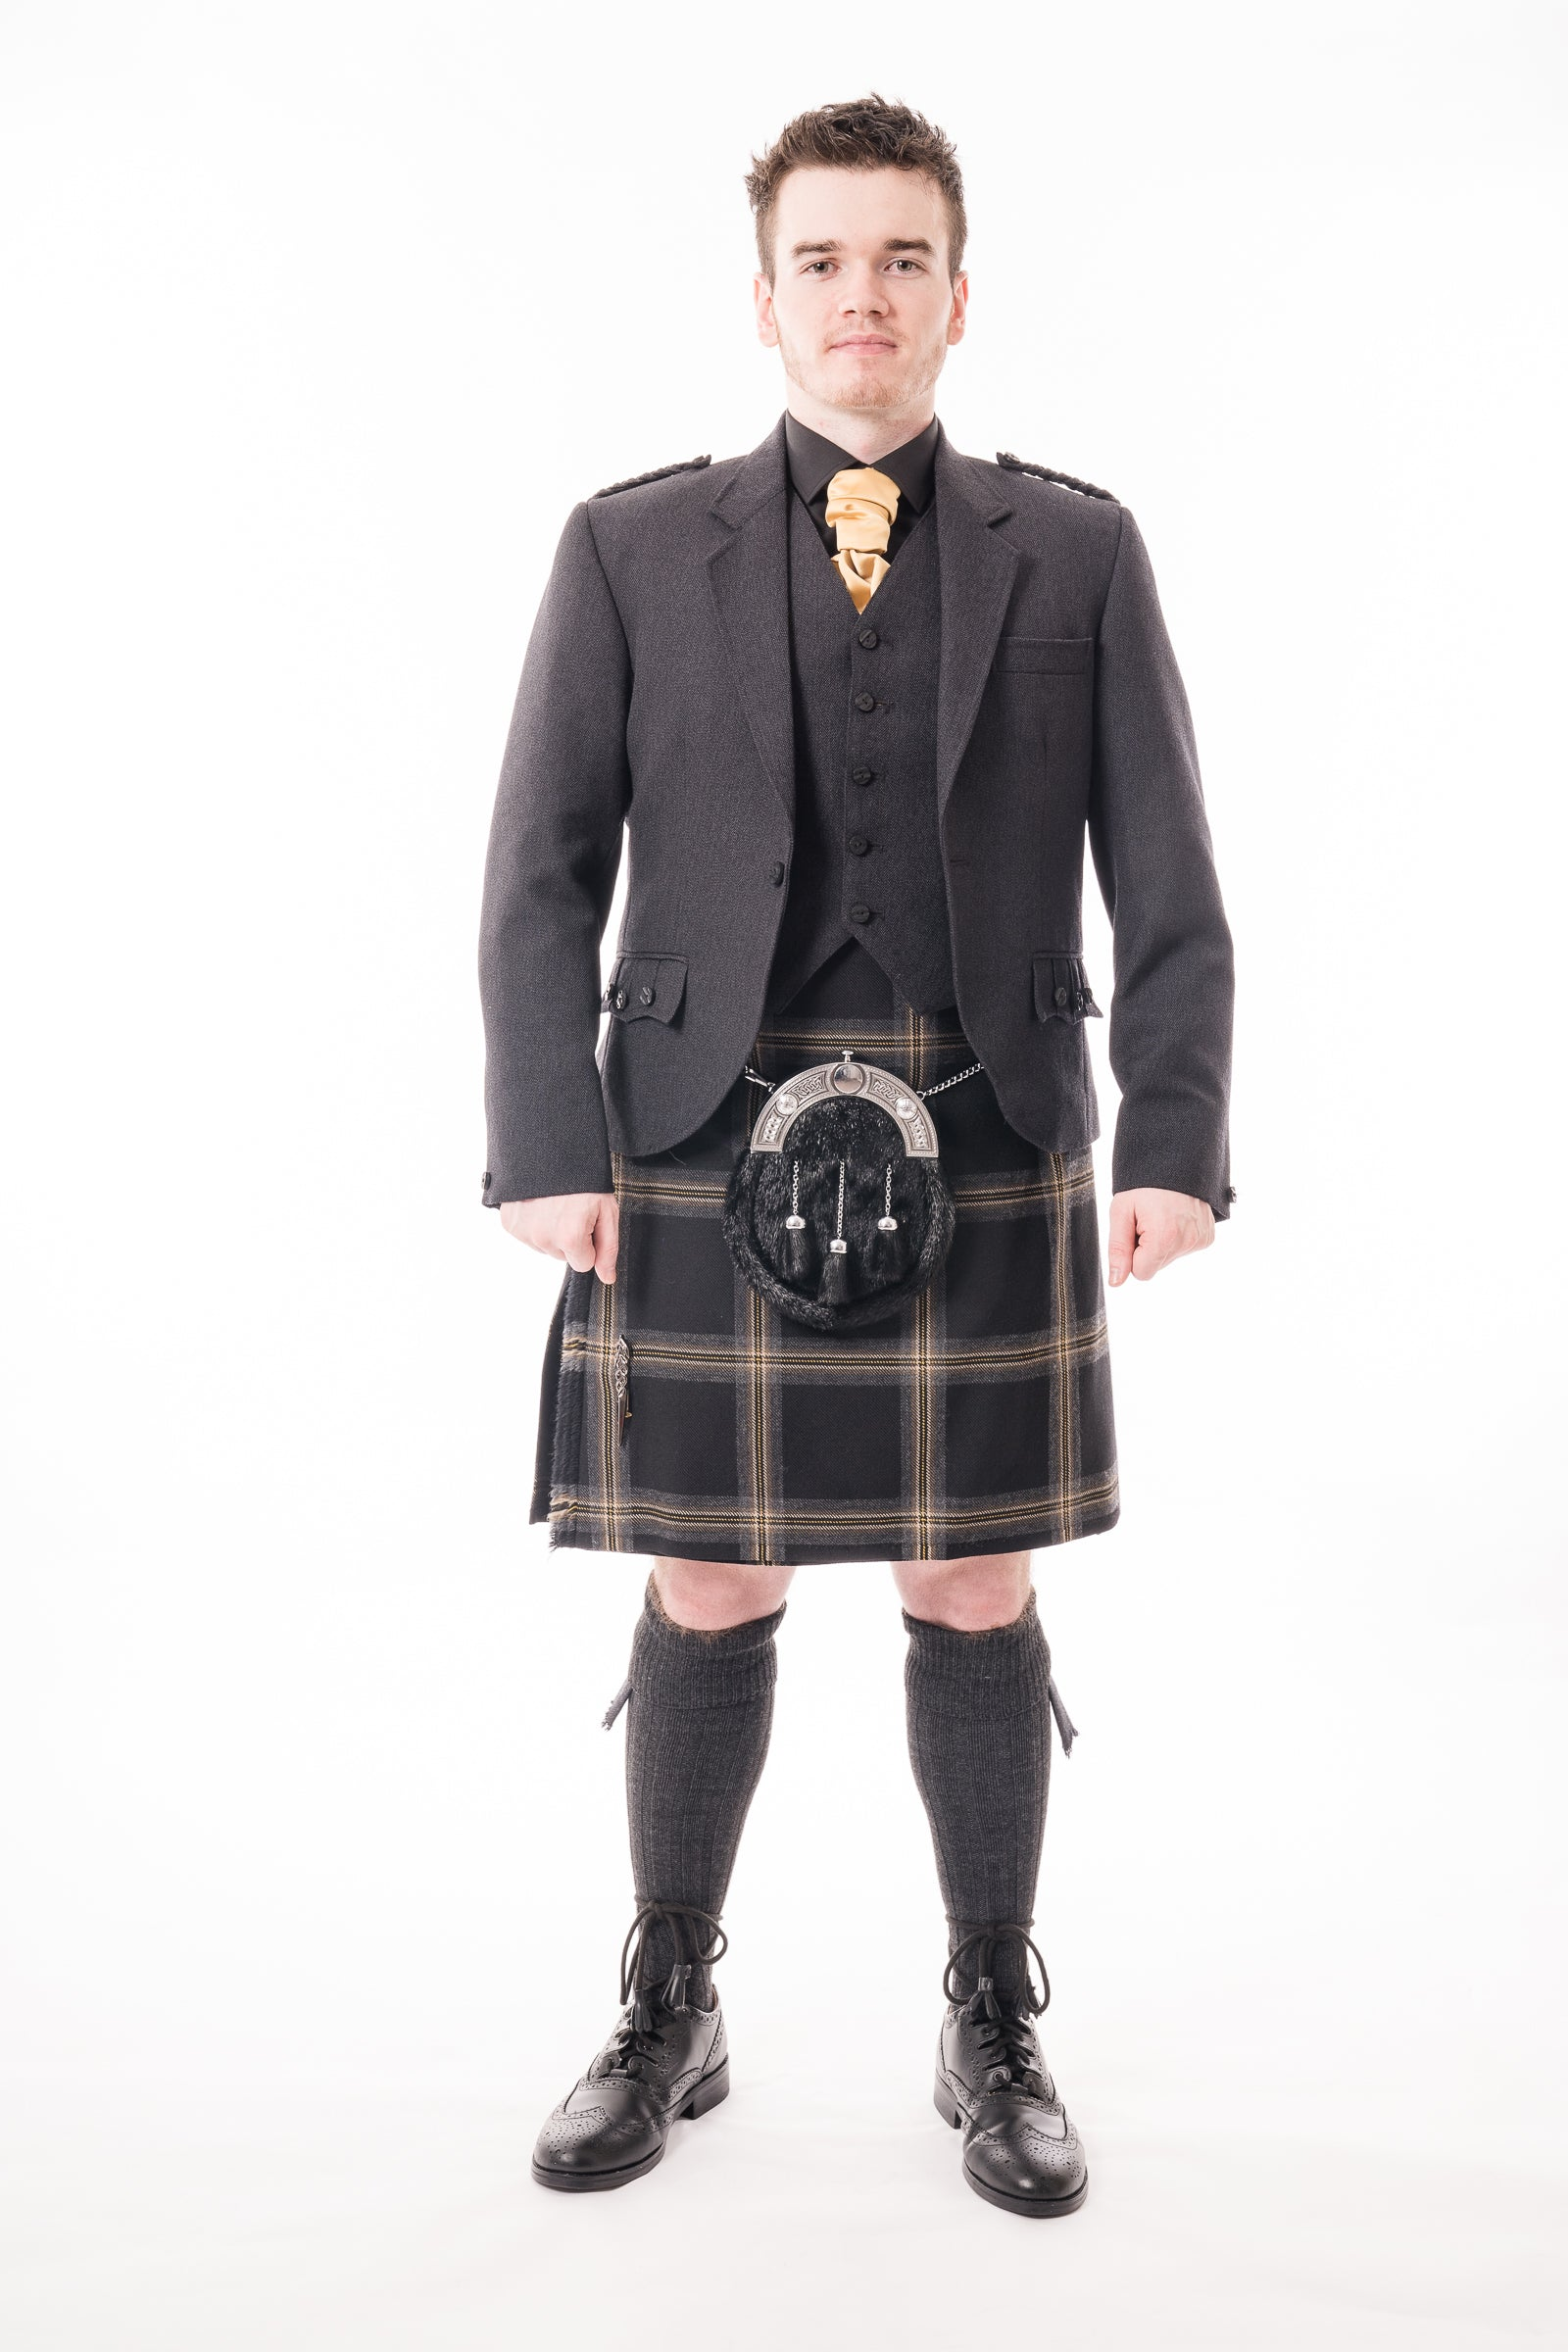 Charcoal crail kilt hire outfit with Black Galloway kilt from Anderson Kilts Dumfries